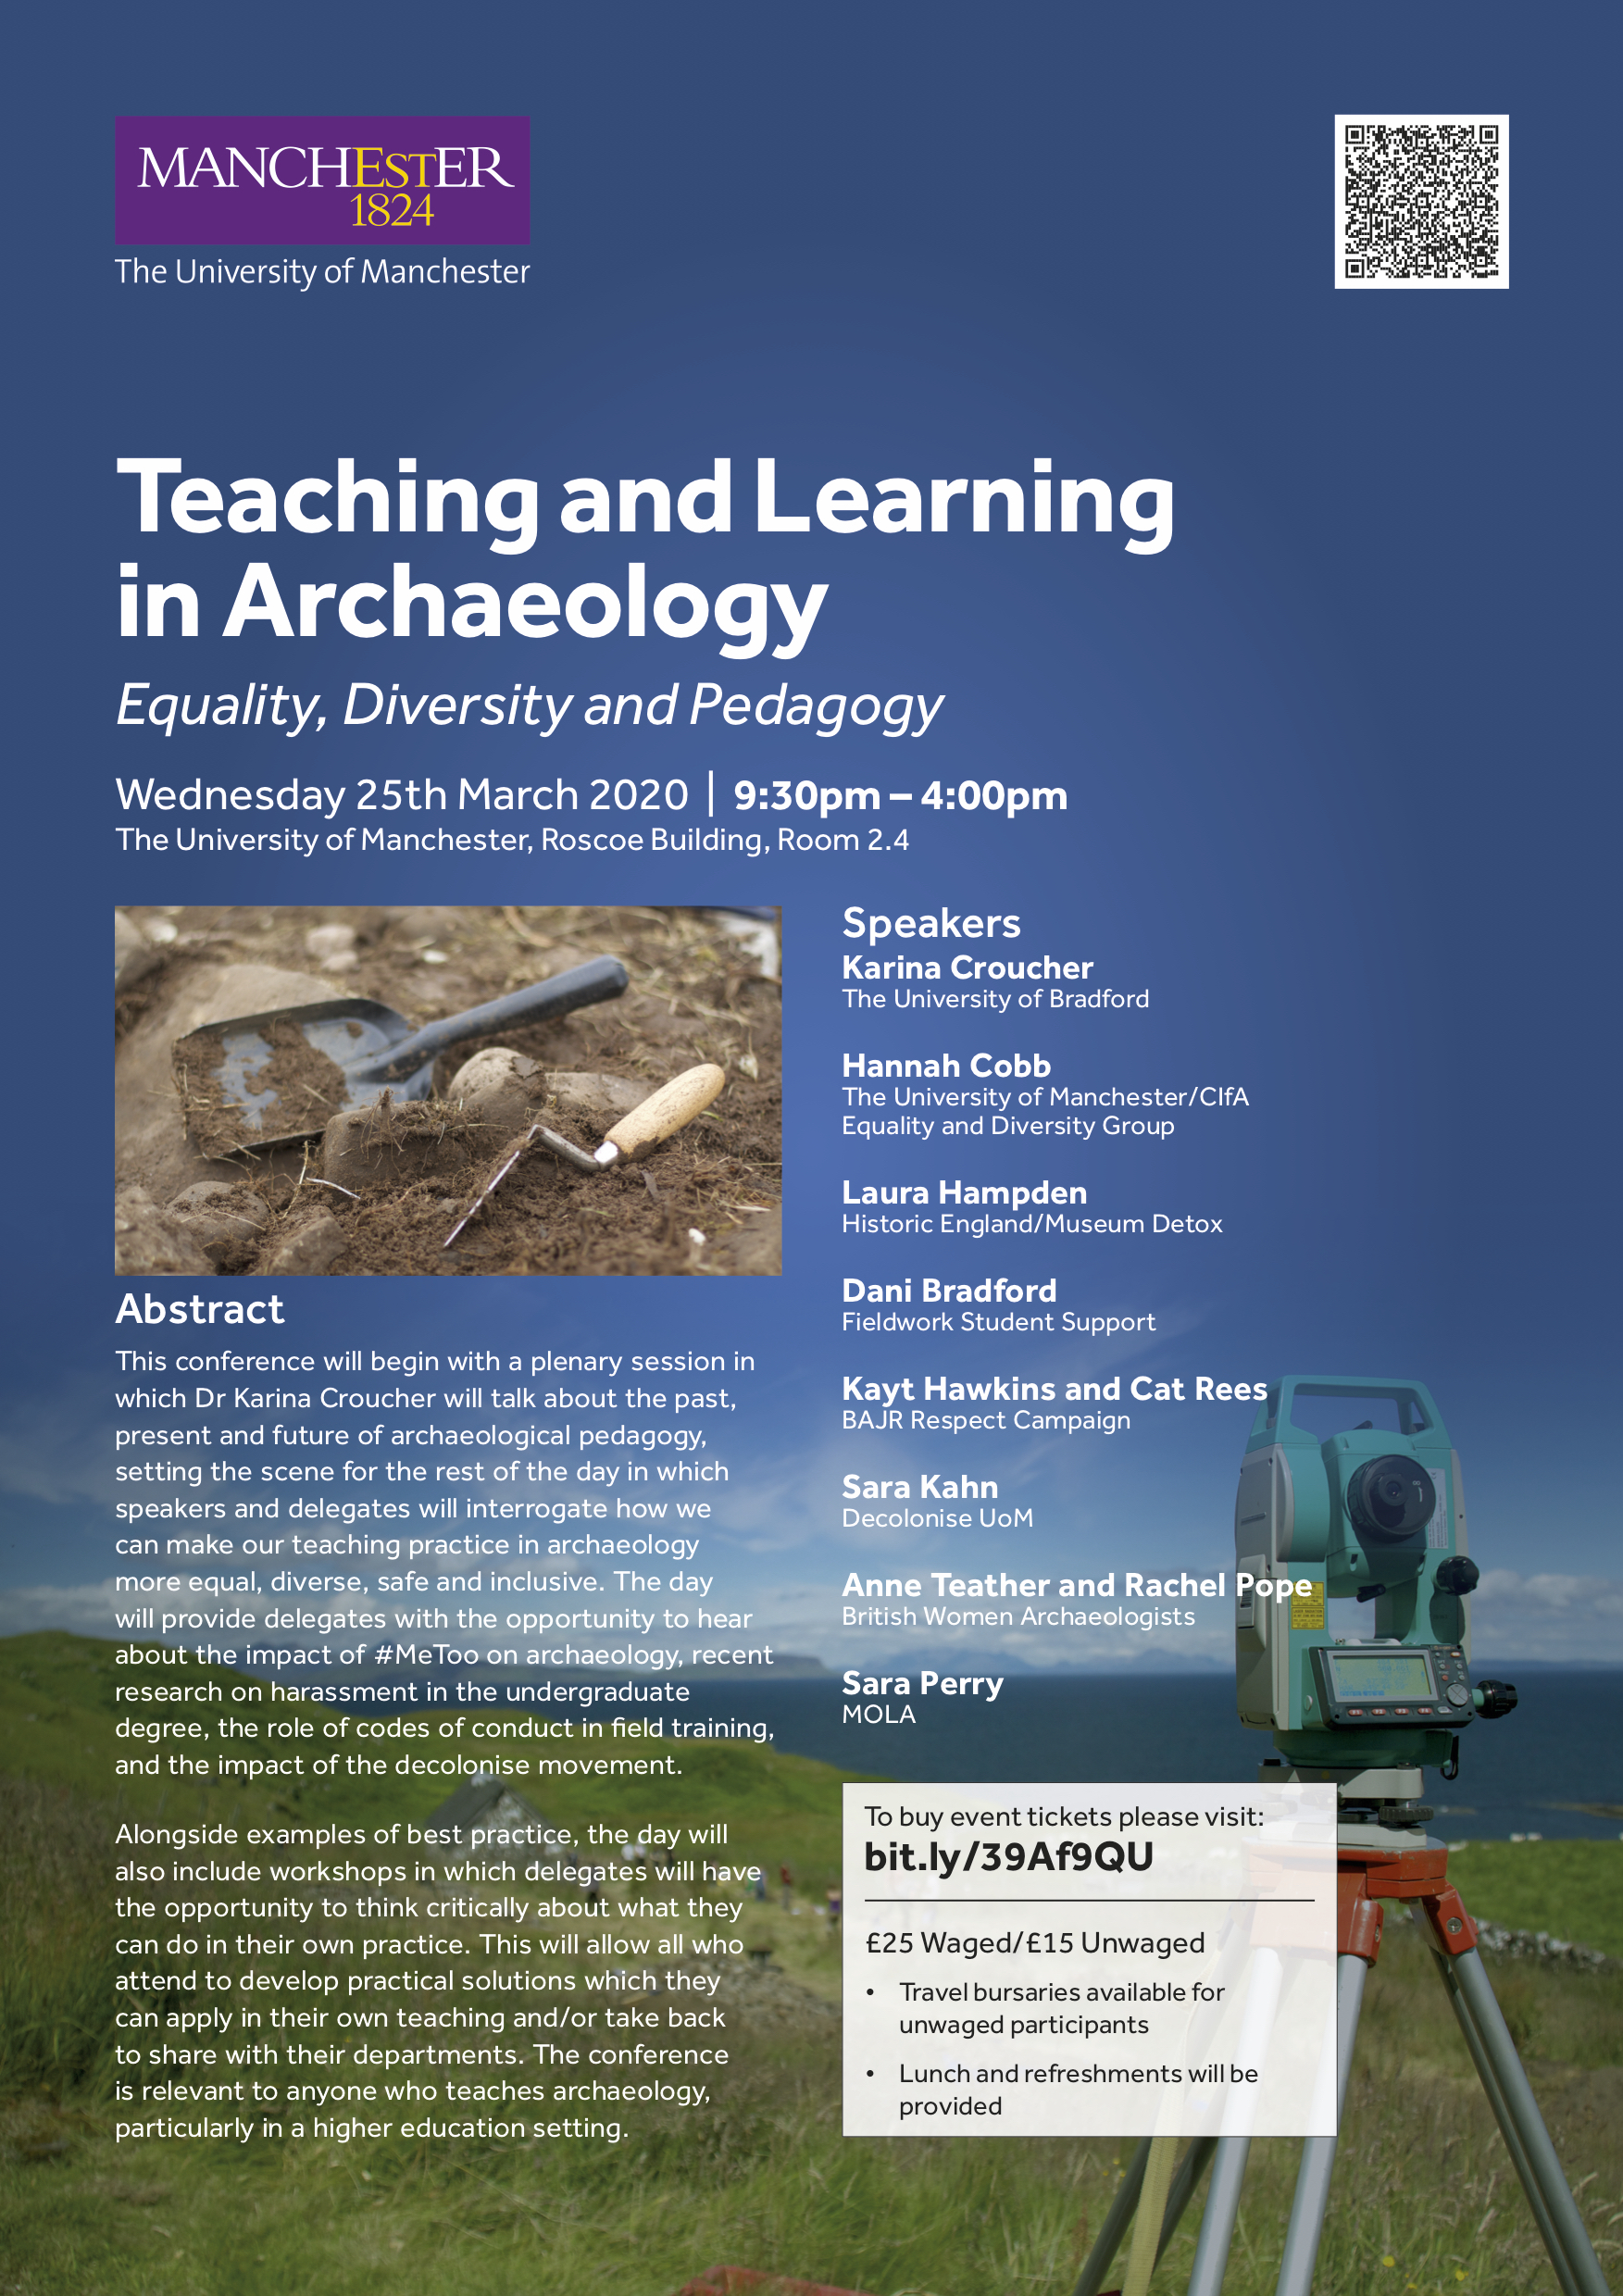 Teaching and Learning in Archaeology 25th March 2020